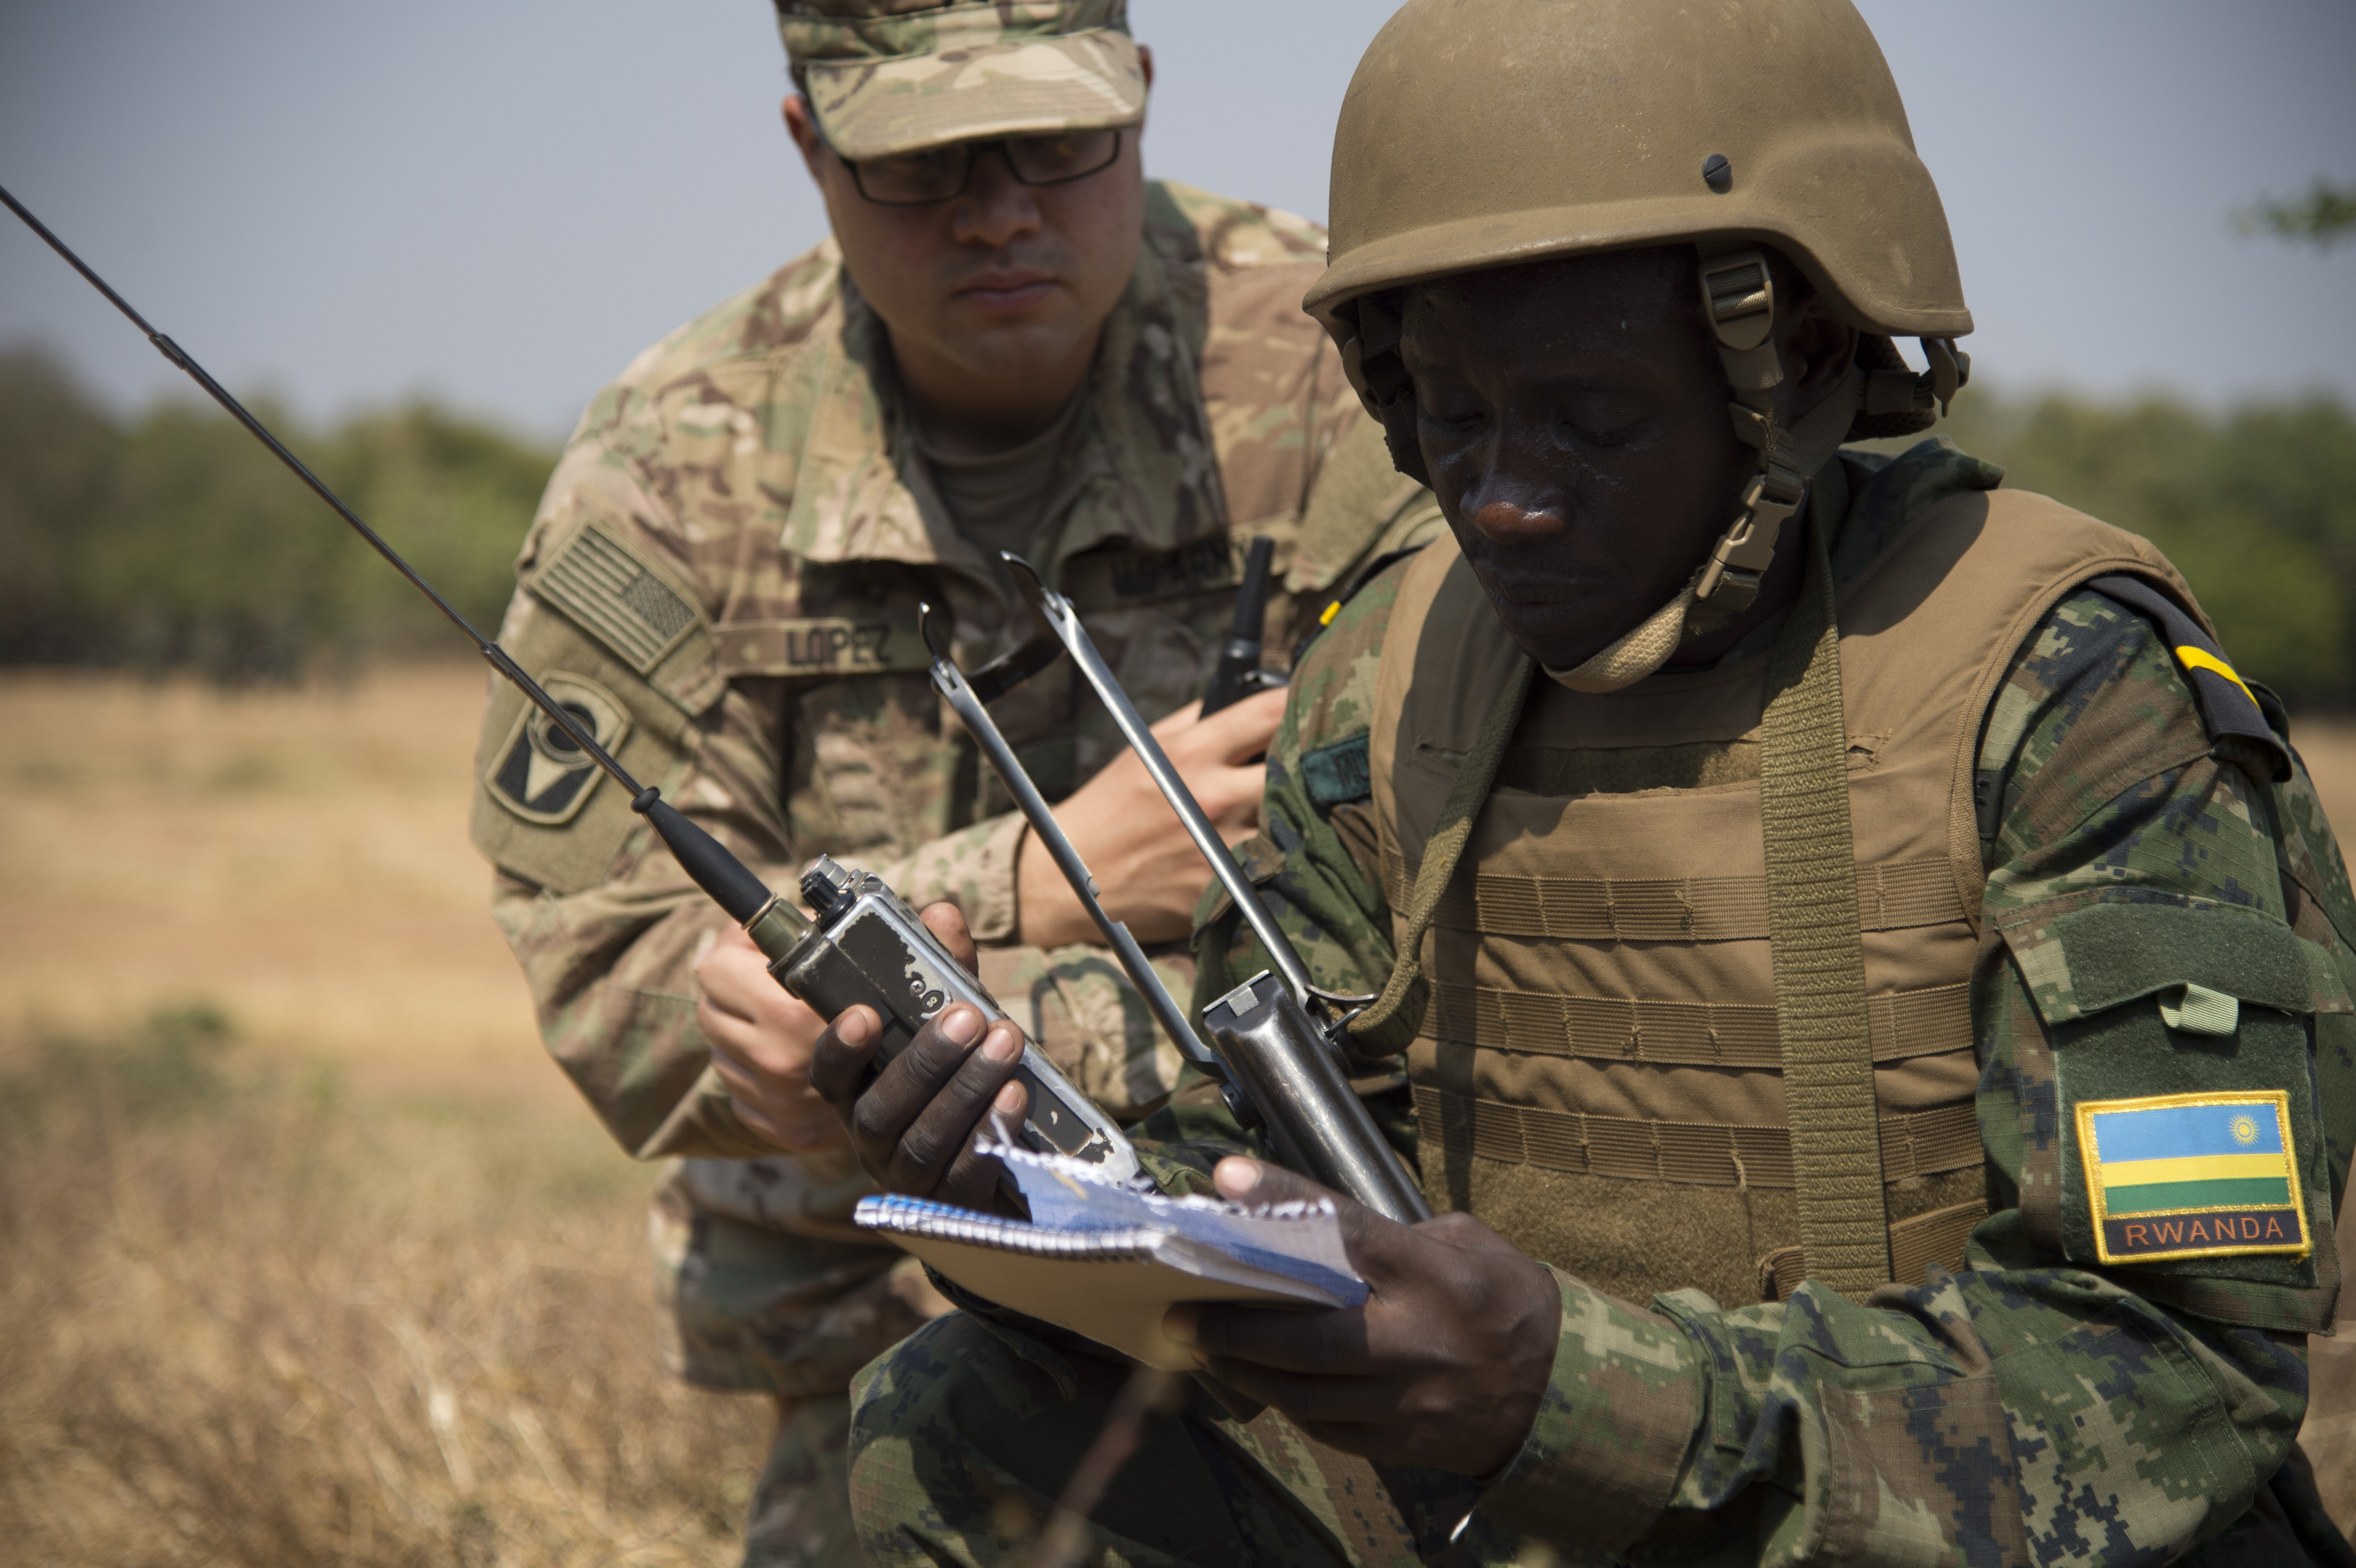 A Rwanda Defense Force soldier calls in a 9-line report to request a medical evacuation, while Army Sgt. Jonathan Lopez, 1st Battalion, 124th Infantry Regiment medic, observes during a medical exercise Sept. 9, 2016, at the Rwanda Military Academy, Rwanda. The exercise, part of a two-week medical course, tested the RDF soldiers' abilities to apply techniques of care under fire and other battlefield medical tactics. U.S. Army Soldiers from the 1st Battalion, 124th Infantry Regiment, assigned to Combined Joint Task Force-Horn of Africa, instructed the course. (U.S. Air Force photo by Staff Sgt. Eric Summers Jr.)